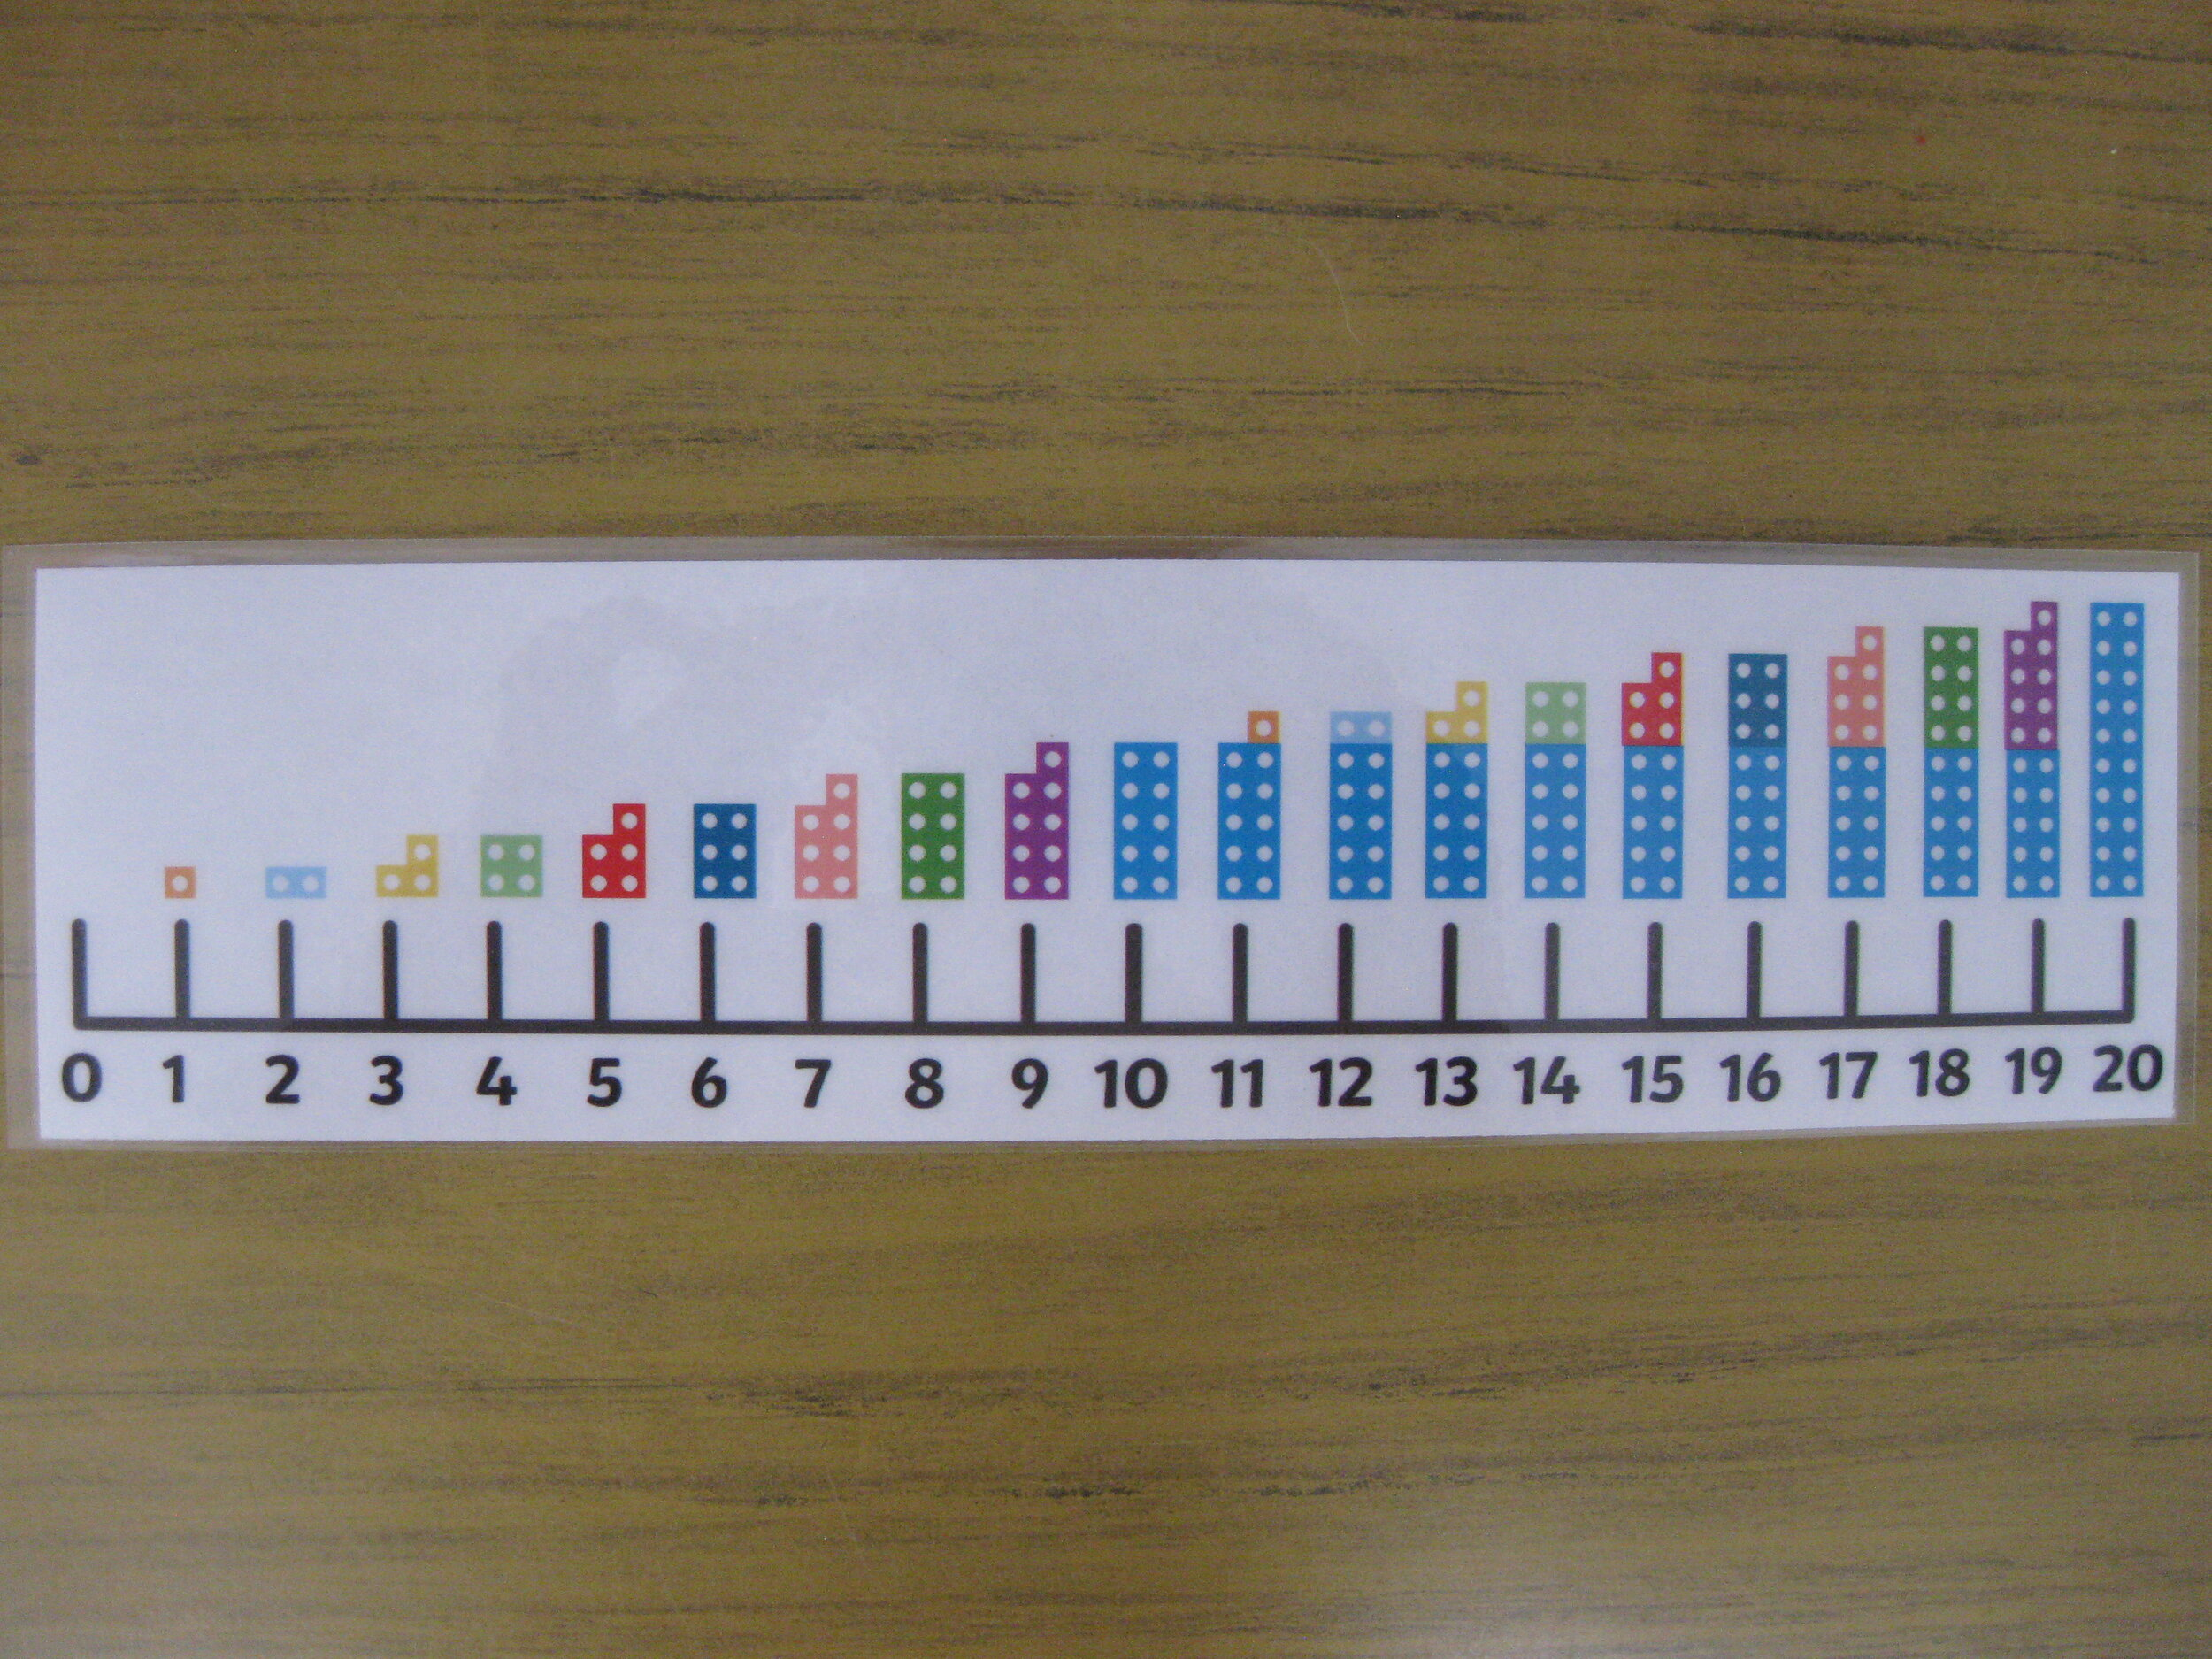 'Numicon encourages children to explore maths using structured imagery and apparatus.'